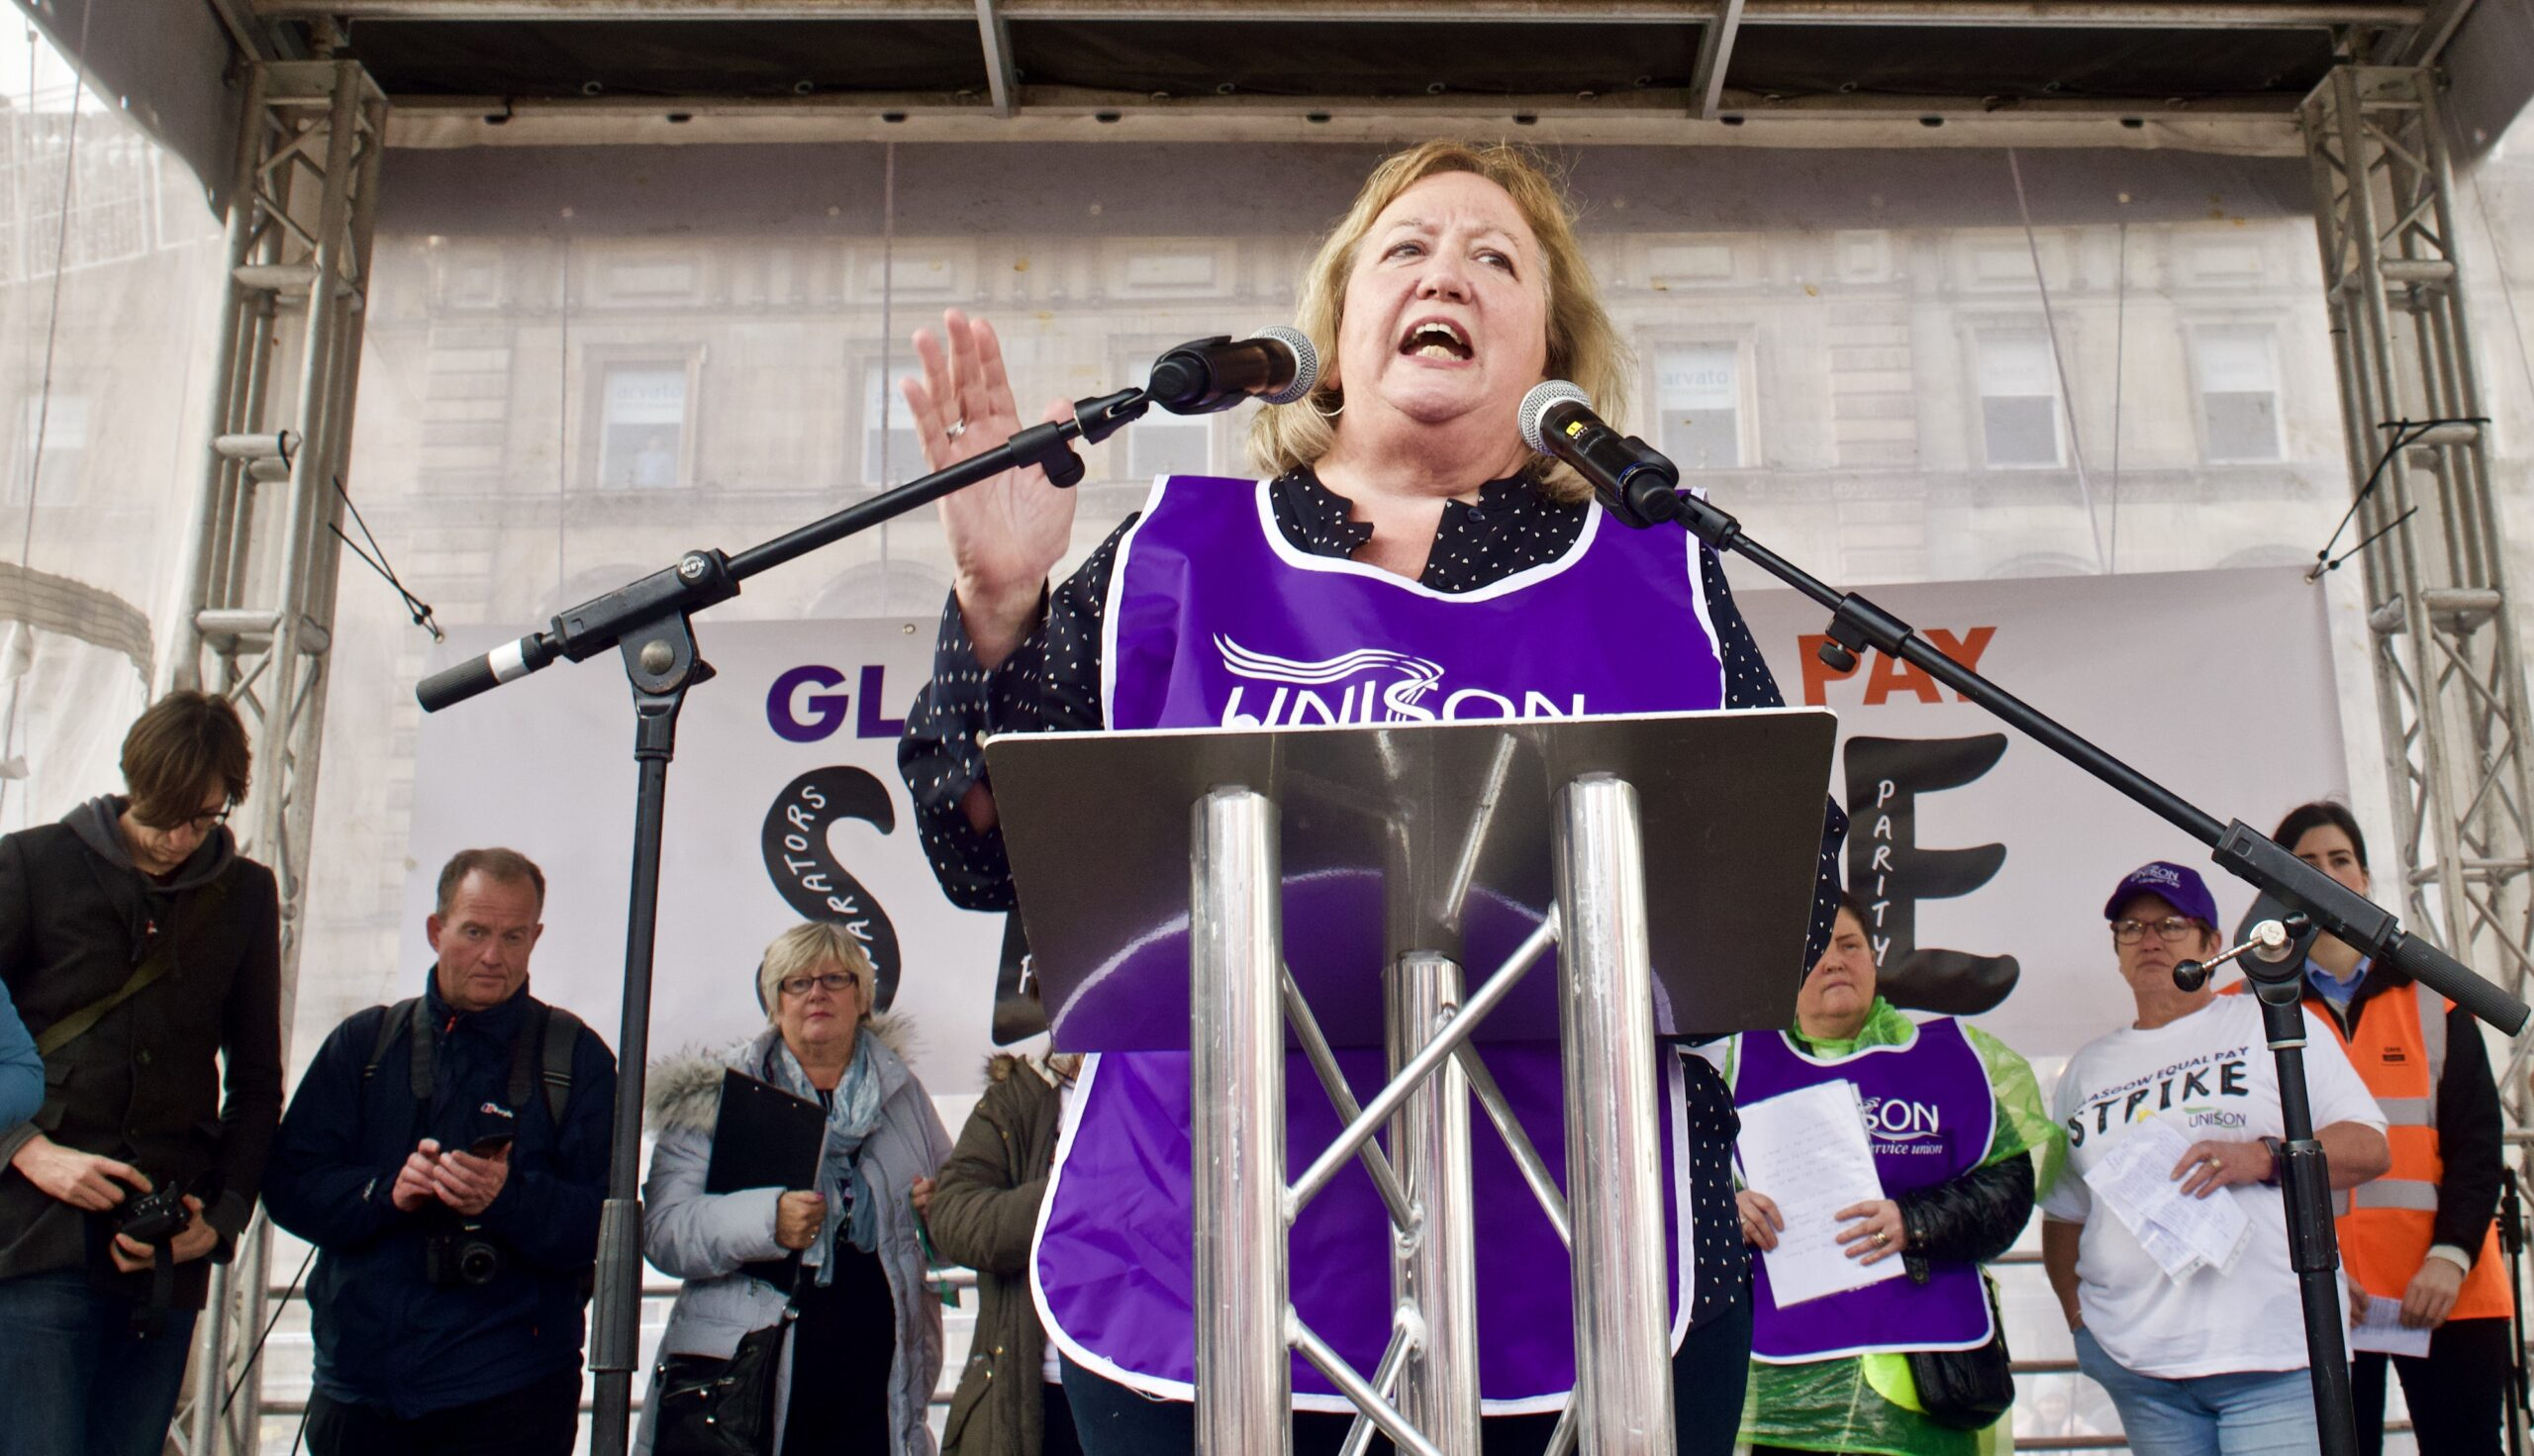 UNISON elect first woman General Secretary